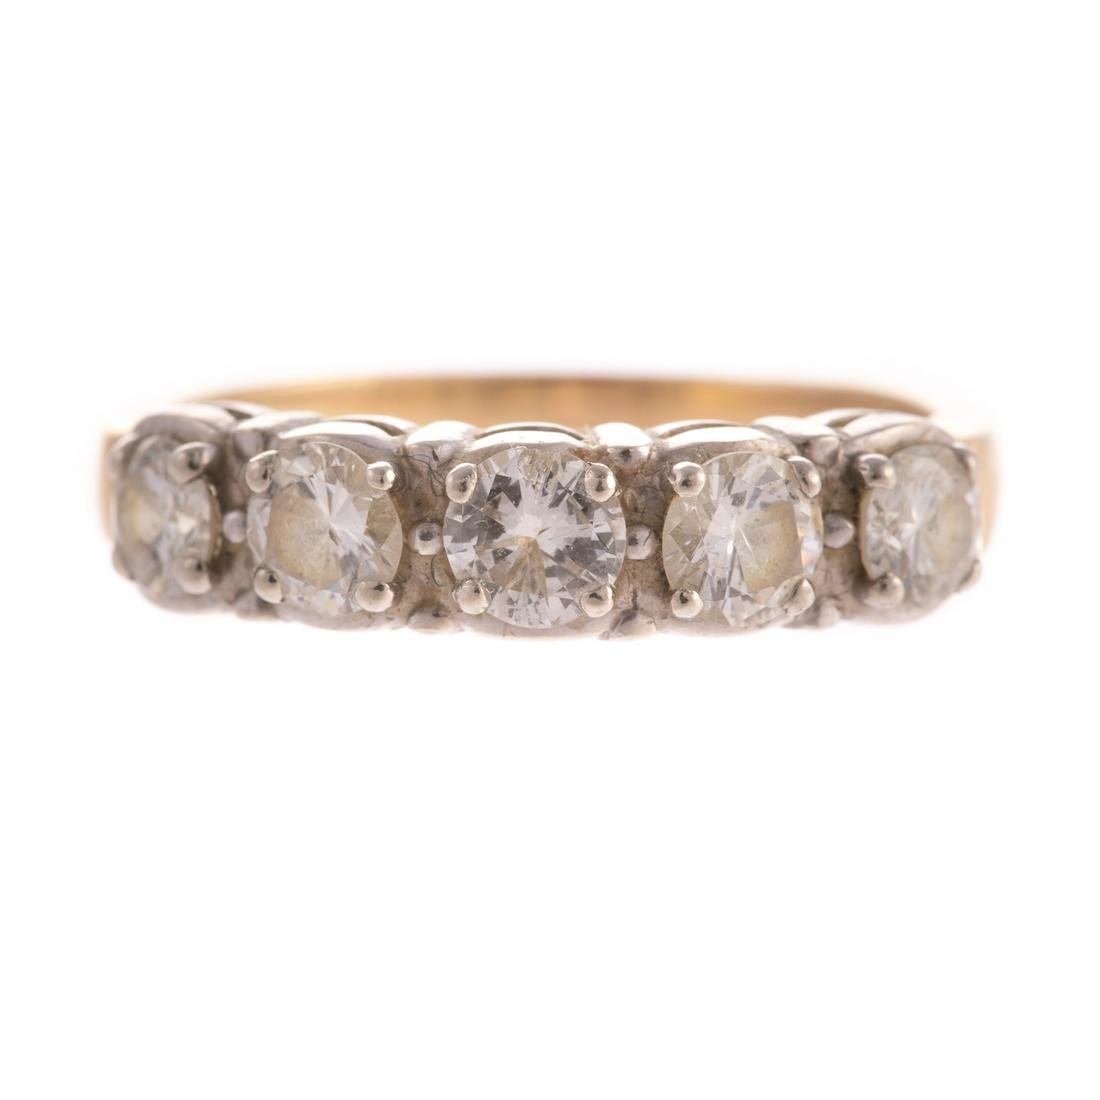 A 1.00 ctw Diamond Wedding Band in 14K